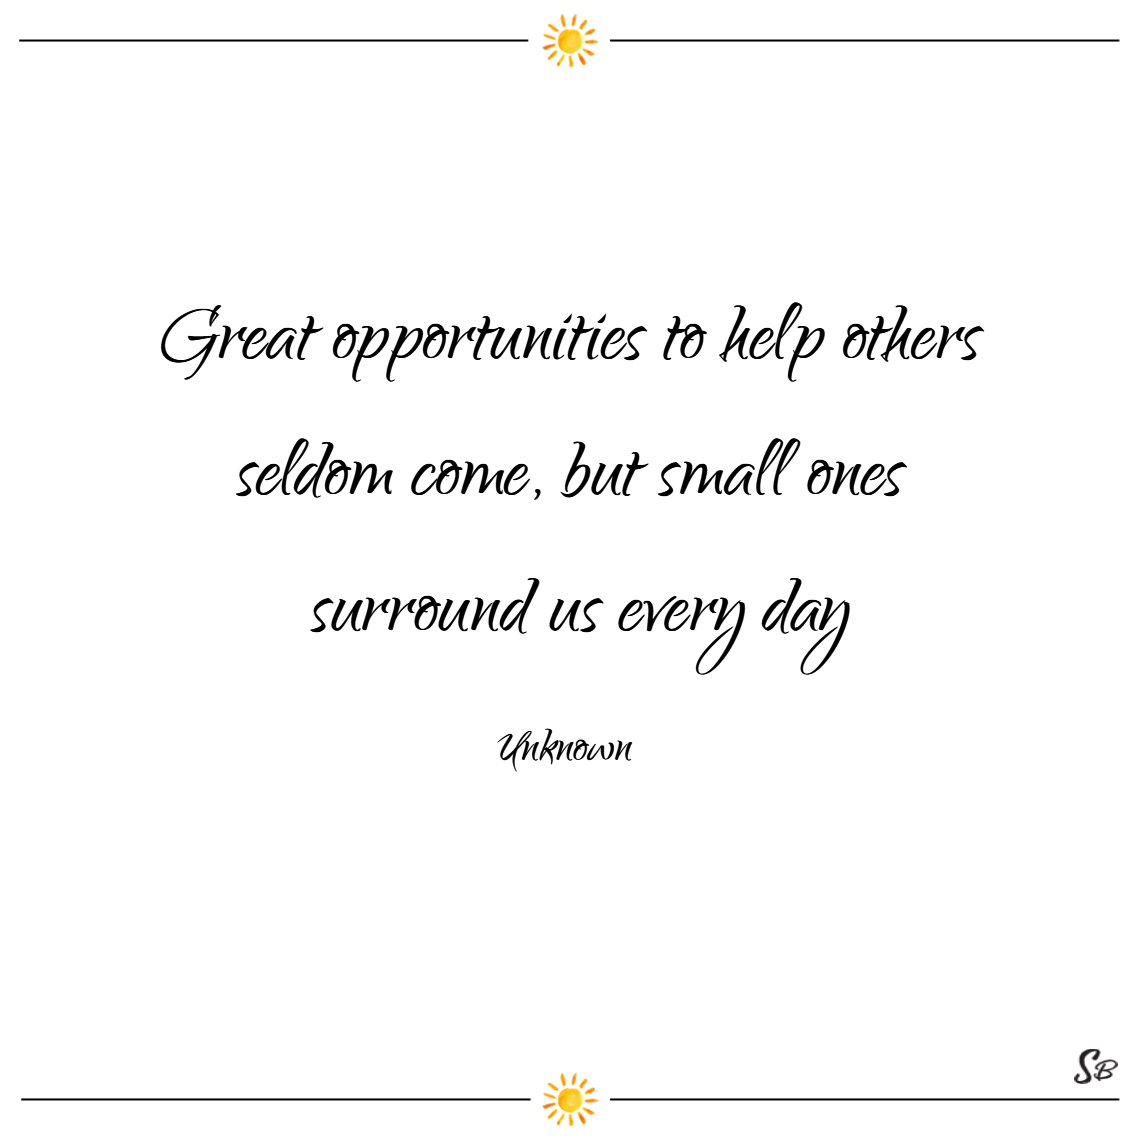 Great opportunities to help others seldom come, but small ones surround us every day. – unknown